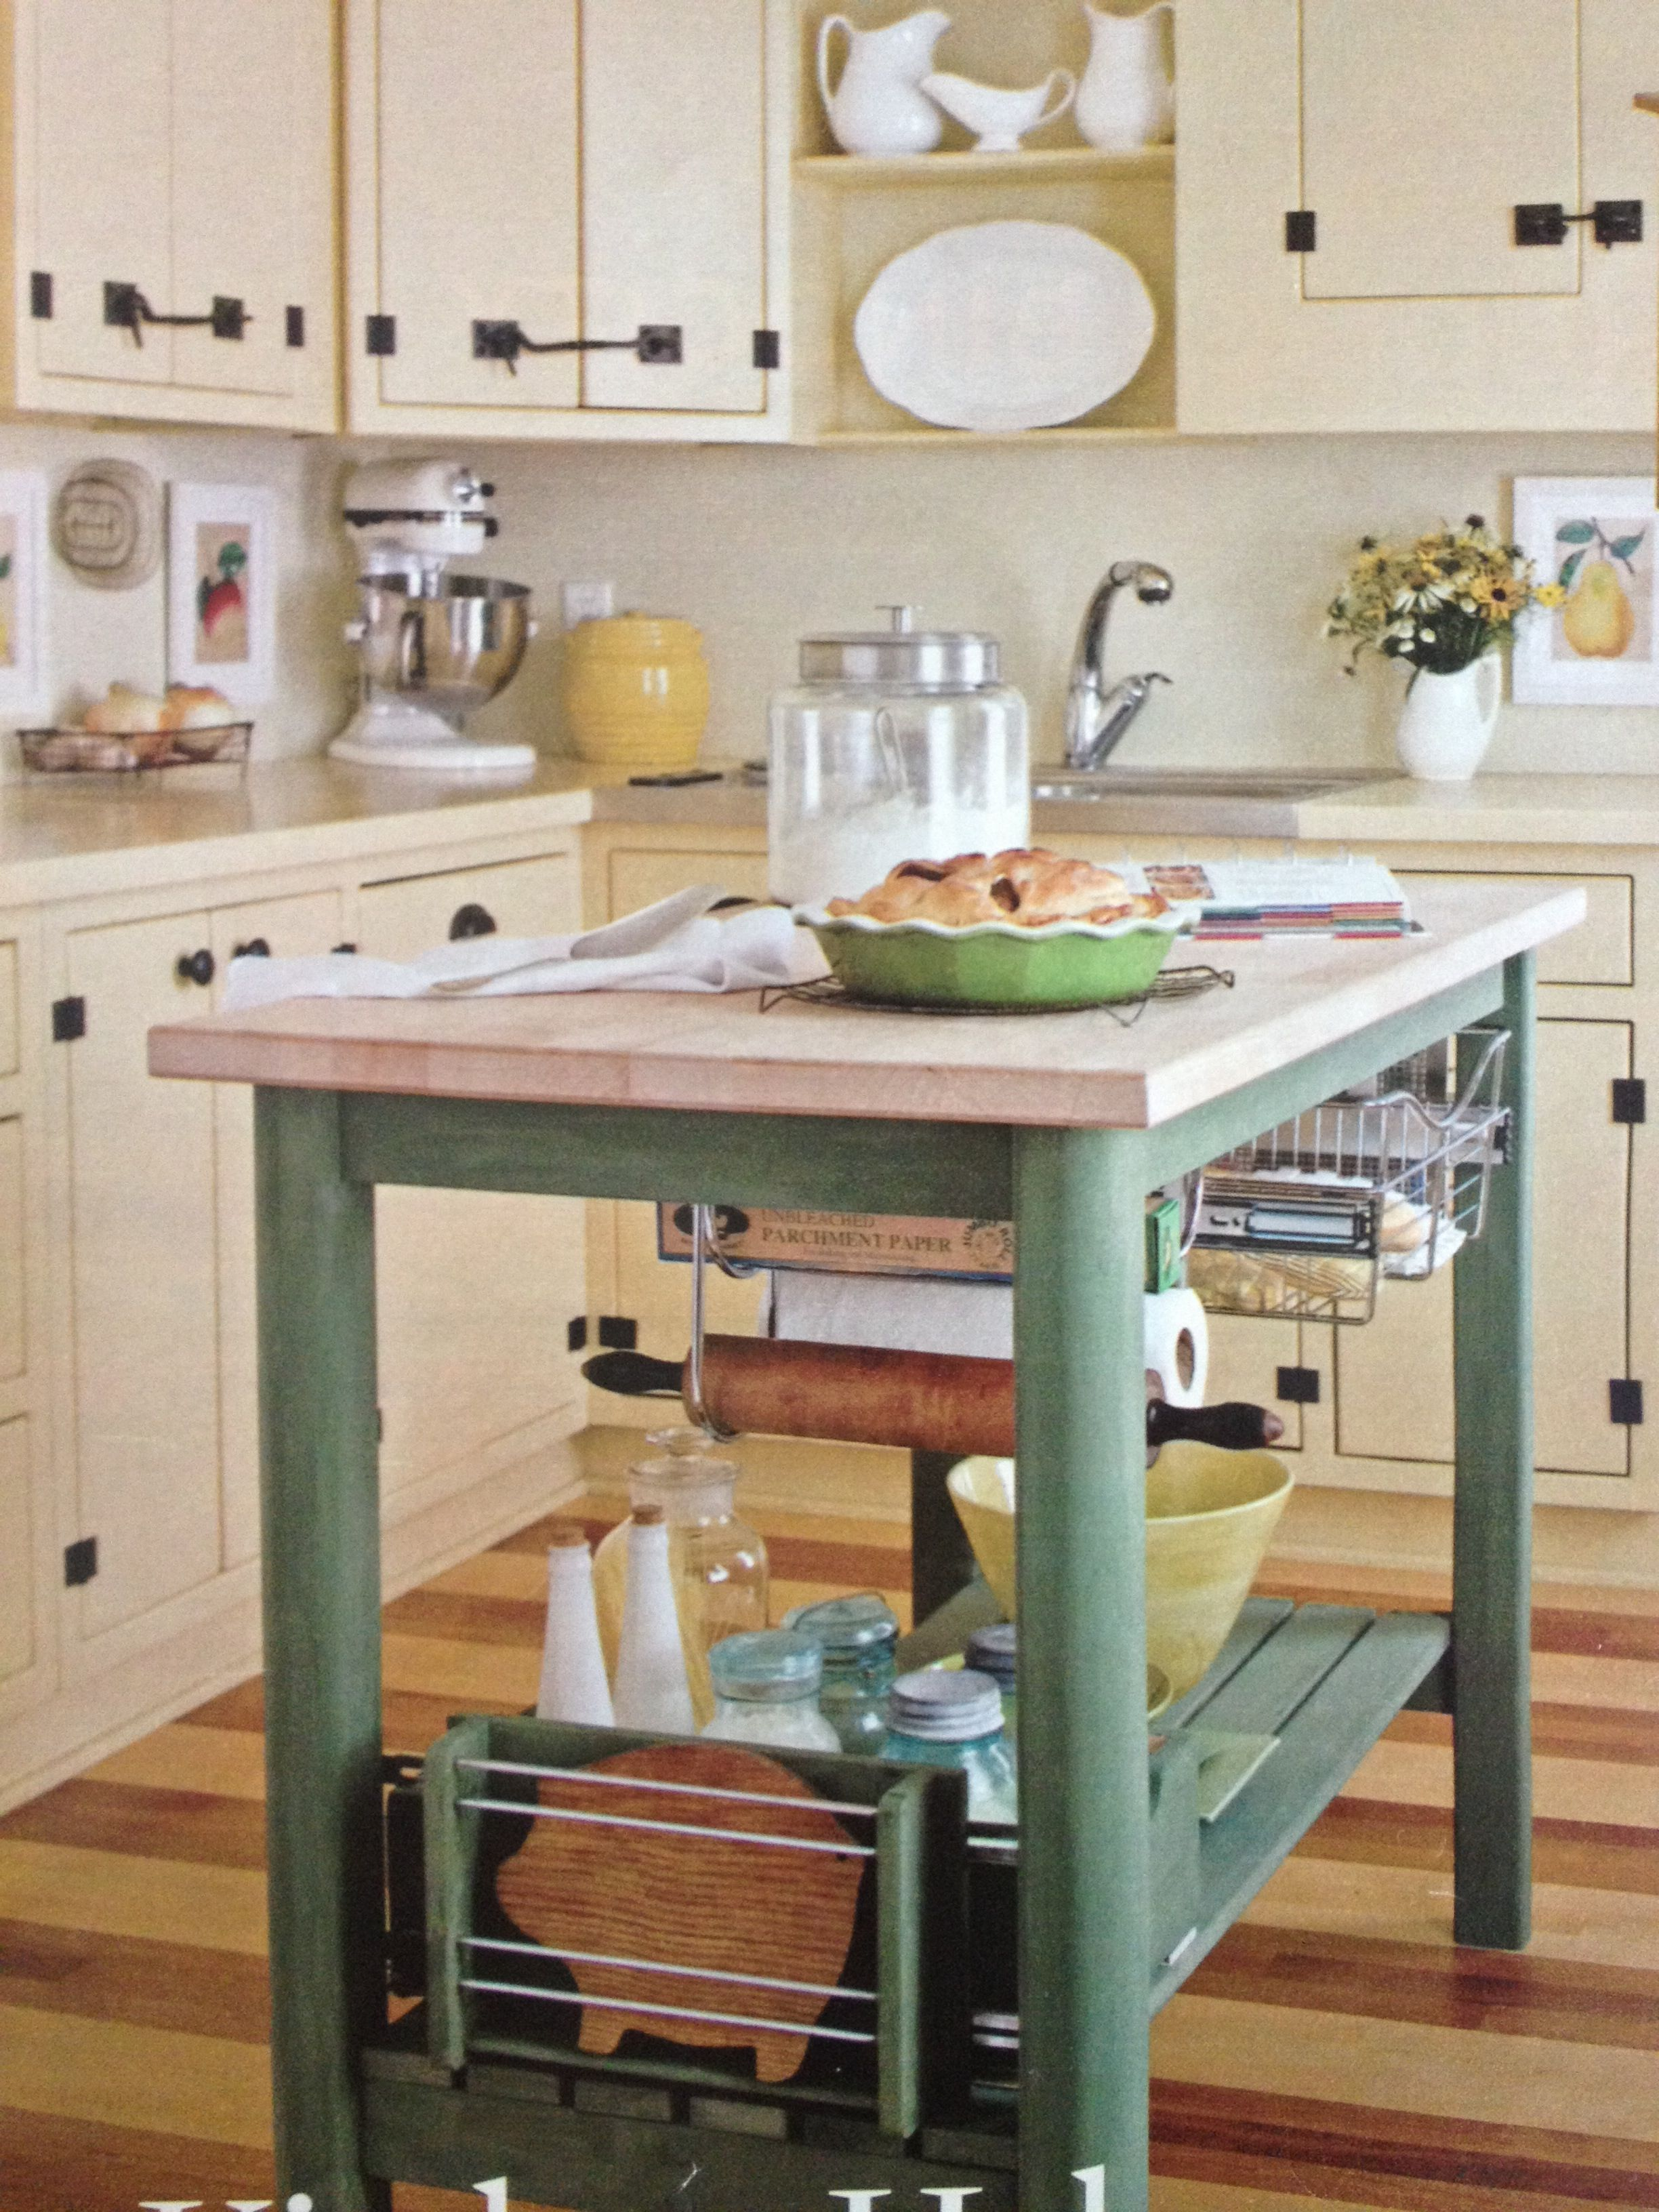 DIY Kitchen Island  Furniture Upcycling and Remodeling